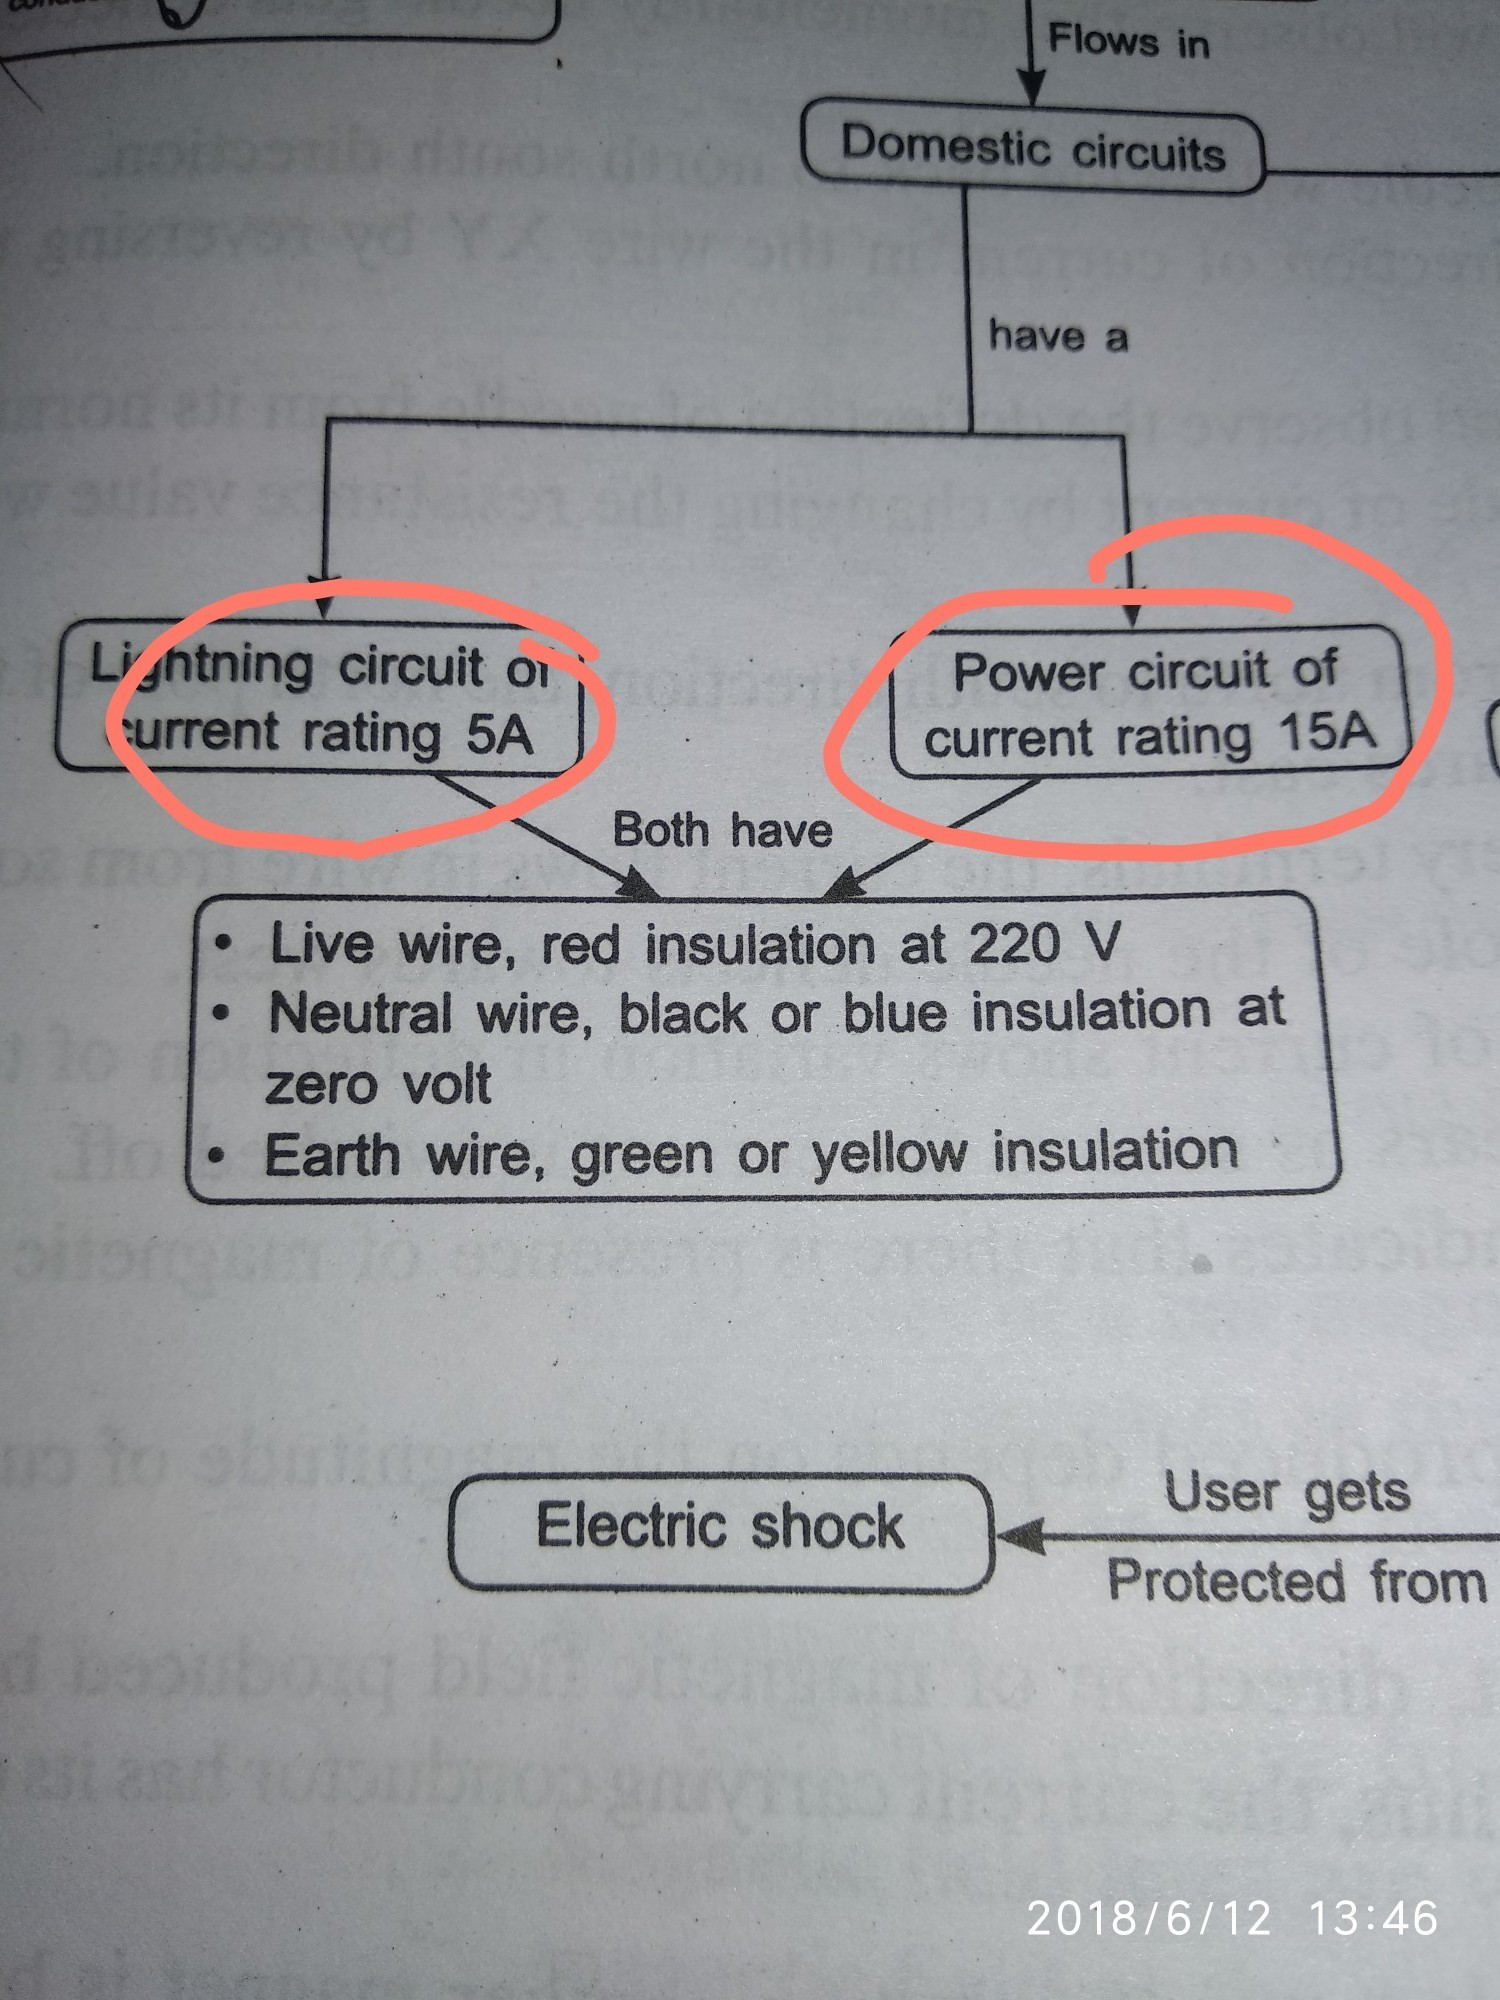 Which two capacities of fuses are usually used in domestic circuits ...